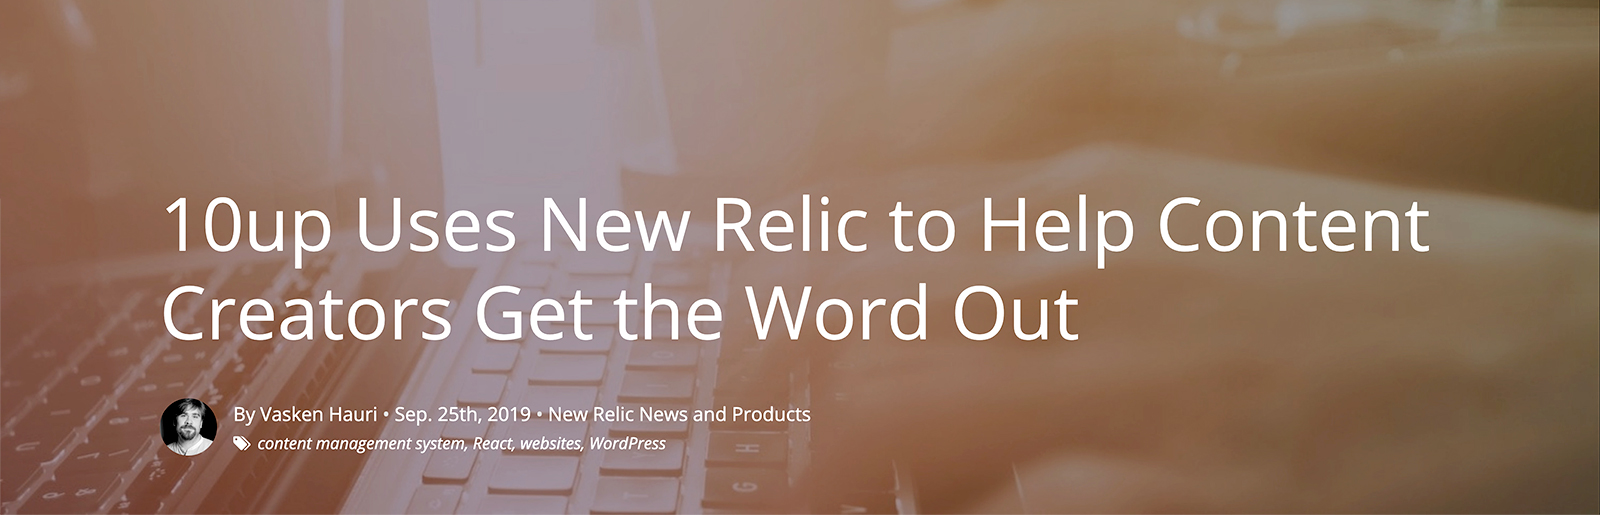 New Relic Guest Post By Vasken Hauri